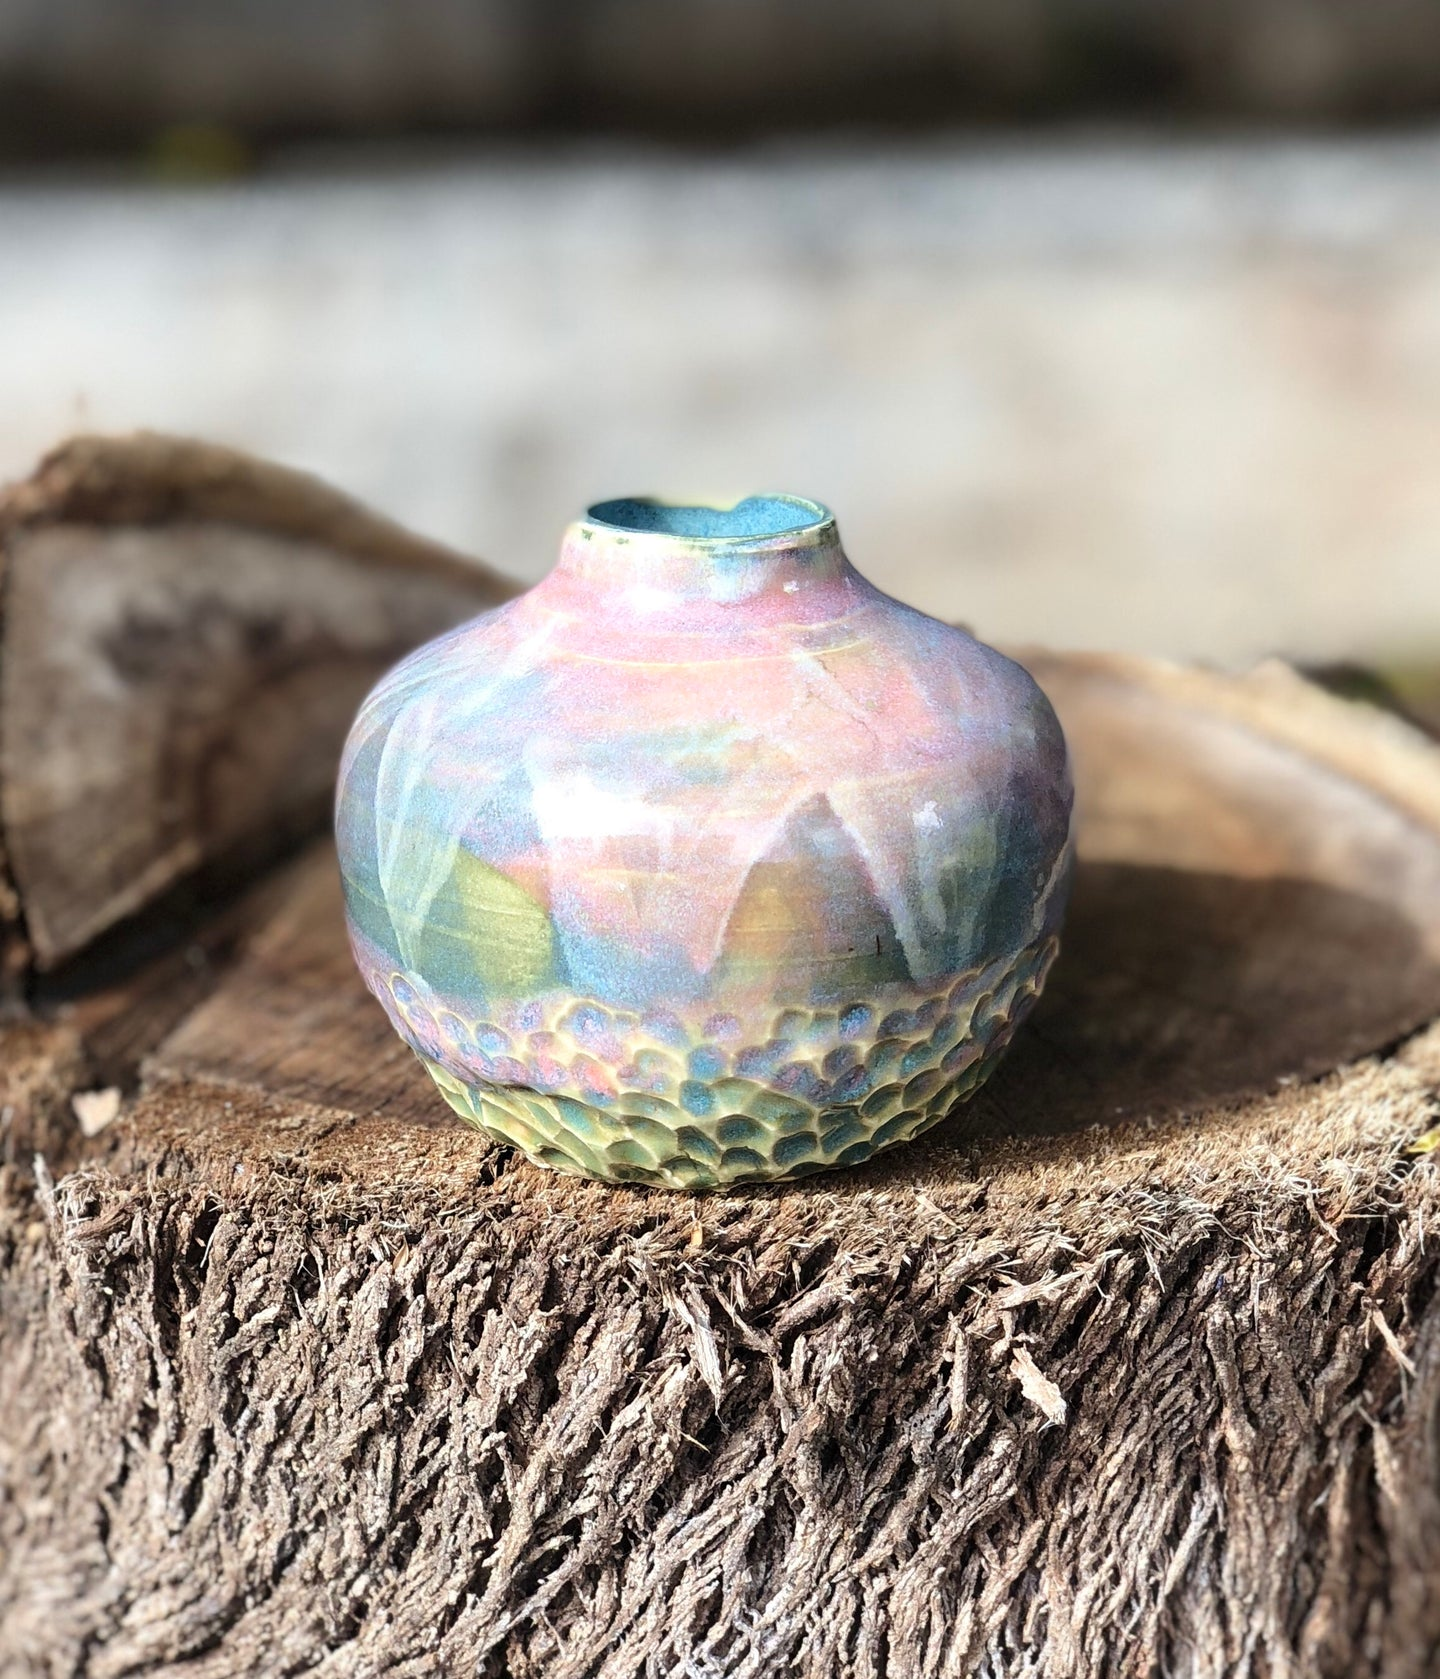 Dreamy Soft Multi Color Flower Bud Vase, Mini Vase - Hsiaowan Studios Handmade Ceramics Pottery